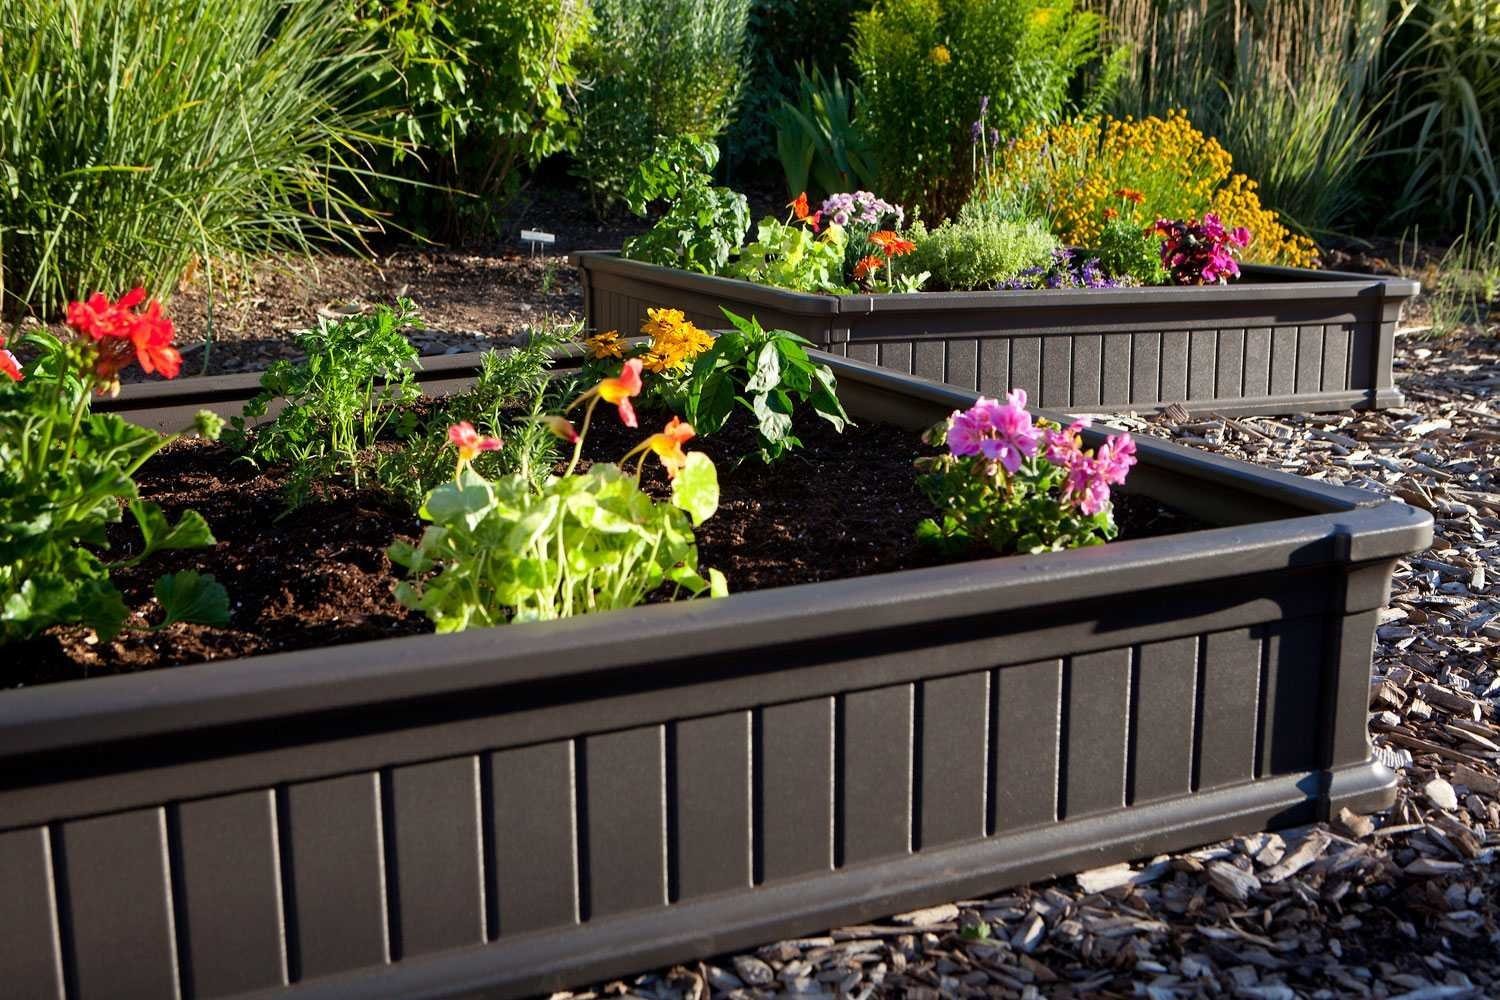 10 Inspiring DIY Raised Garden Beds-Ideas,Plans and Designs – The ...